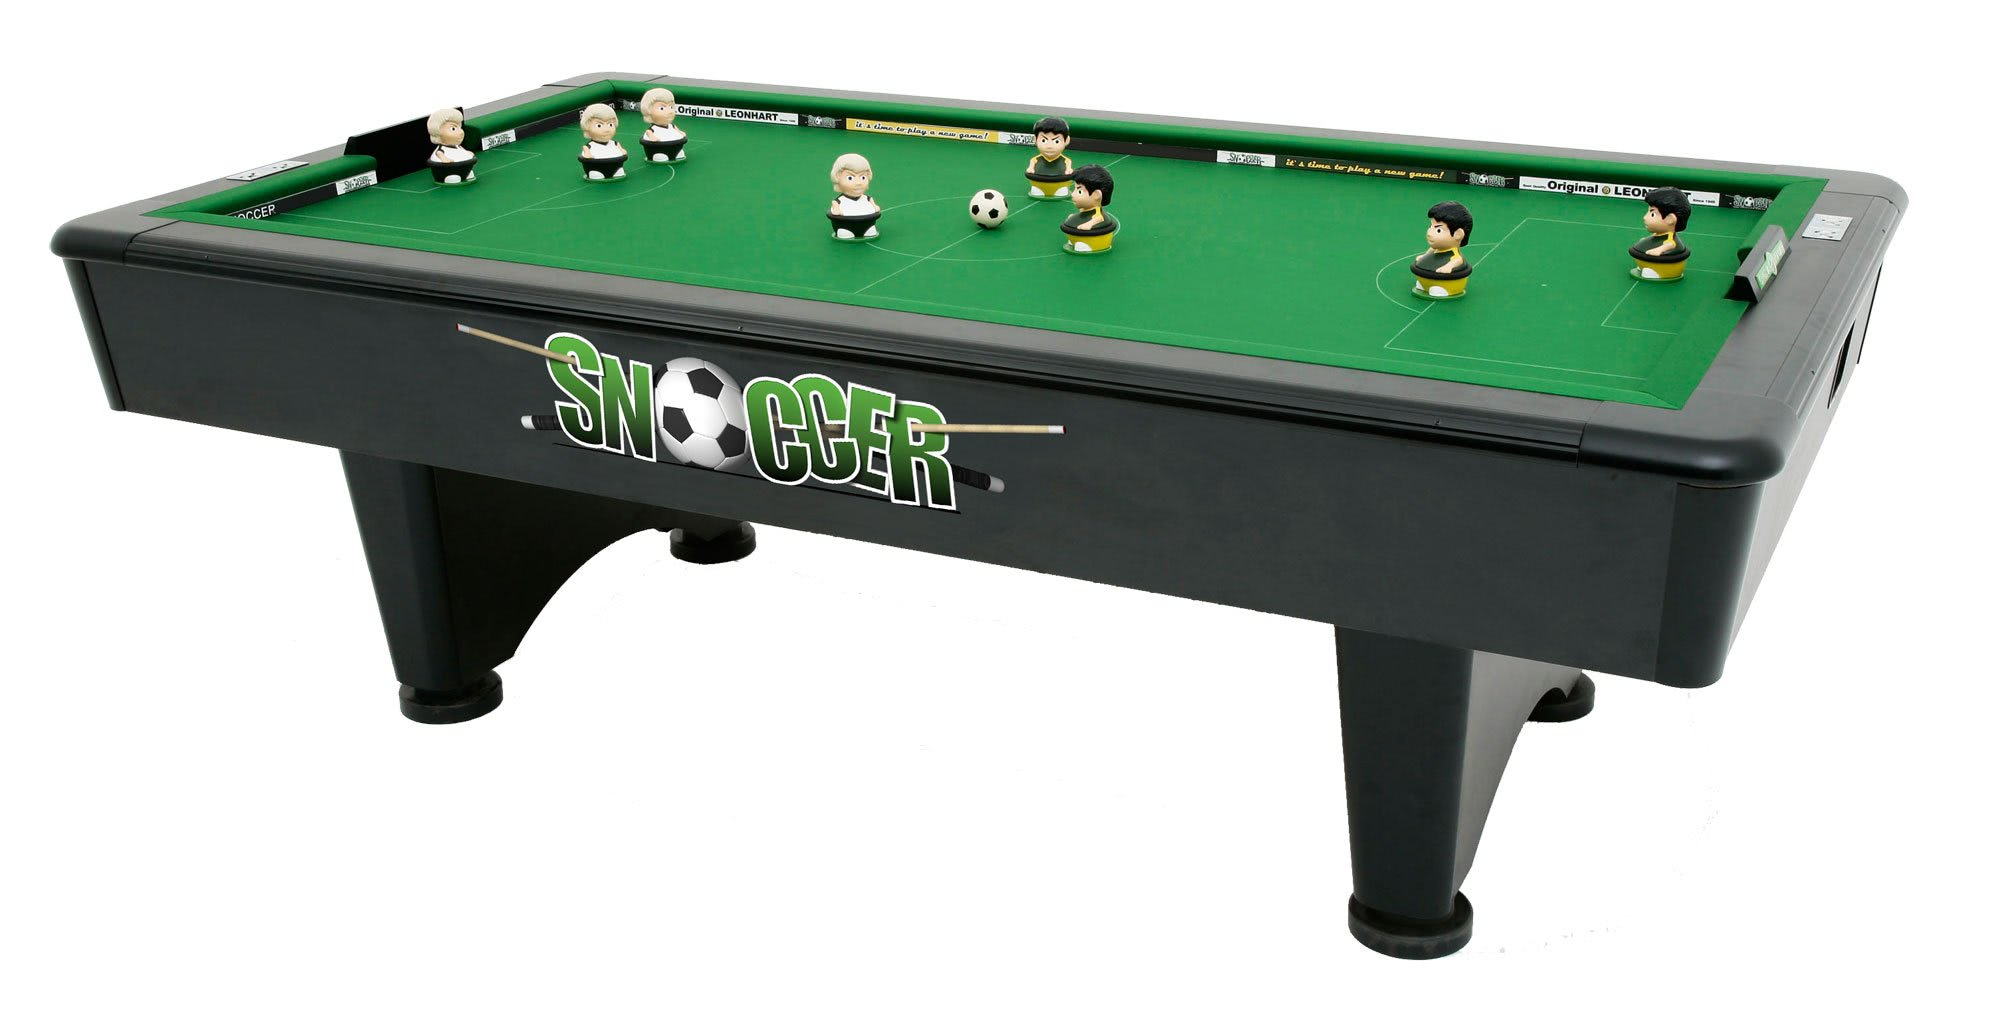 Snoccer snooker soccer combination game table for 10 games in 1 table